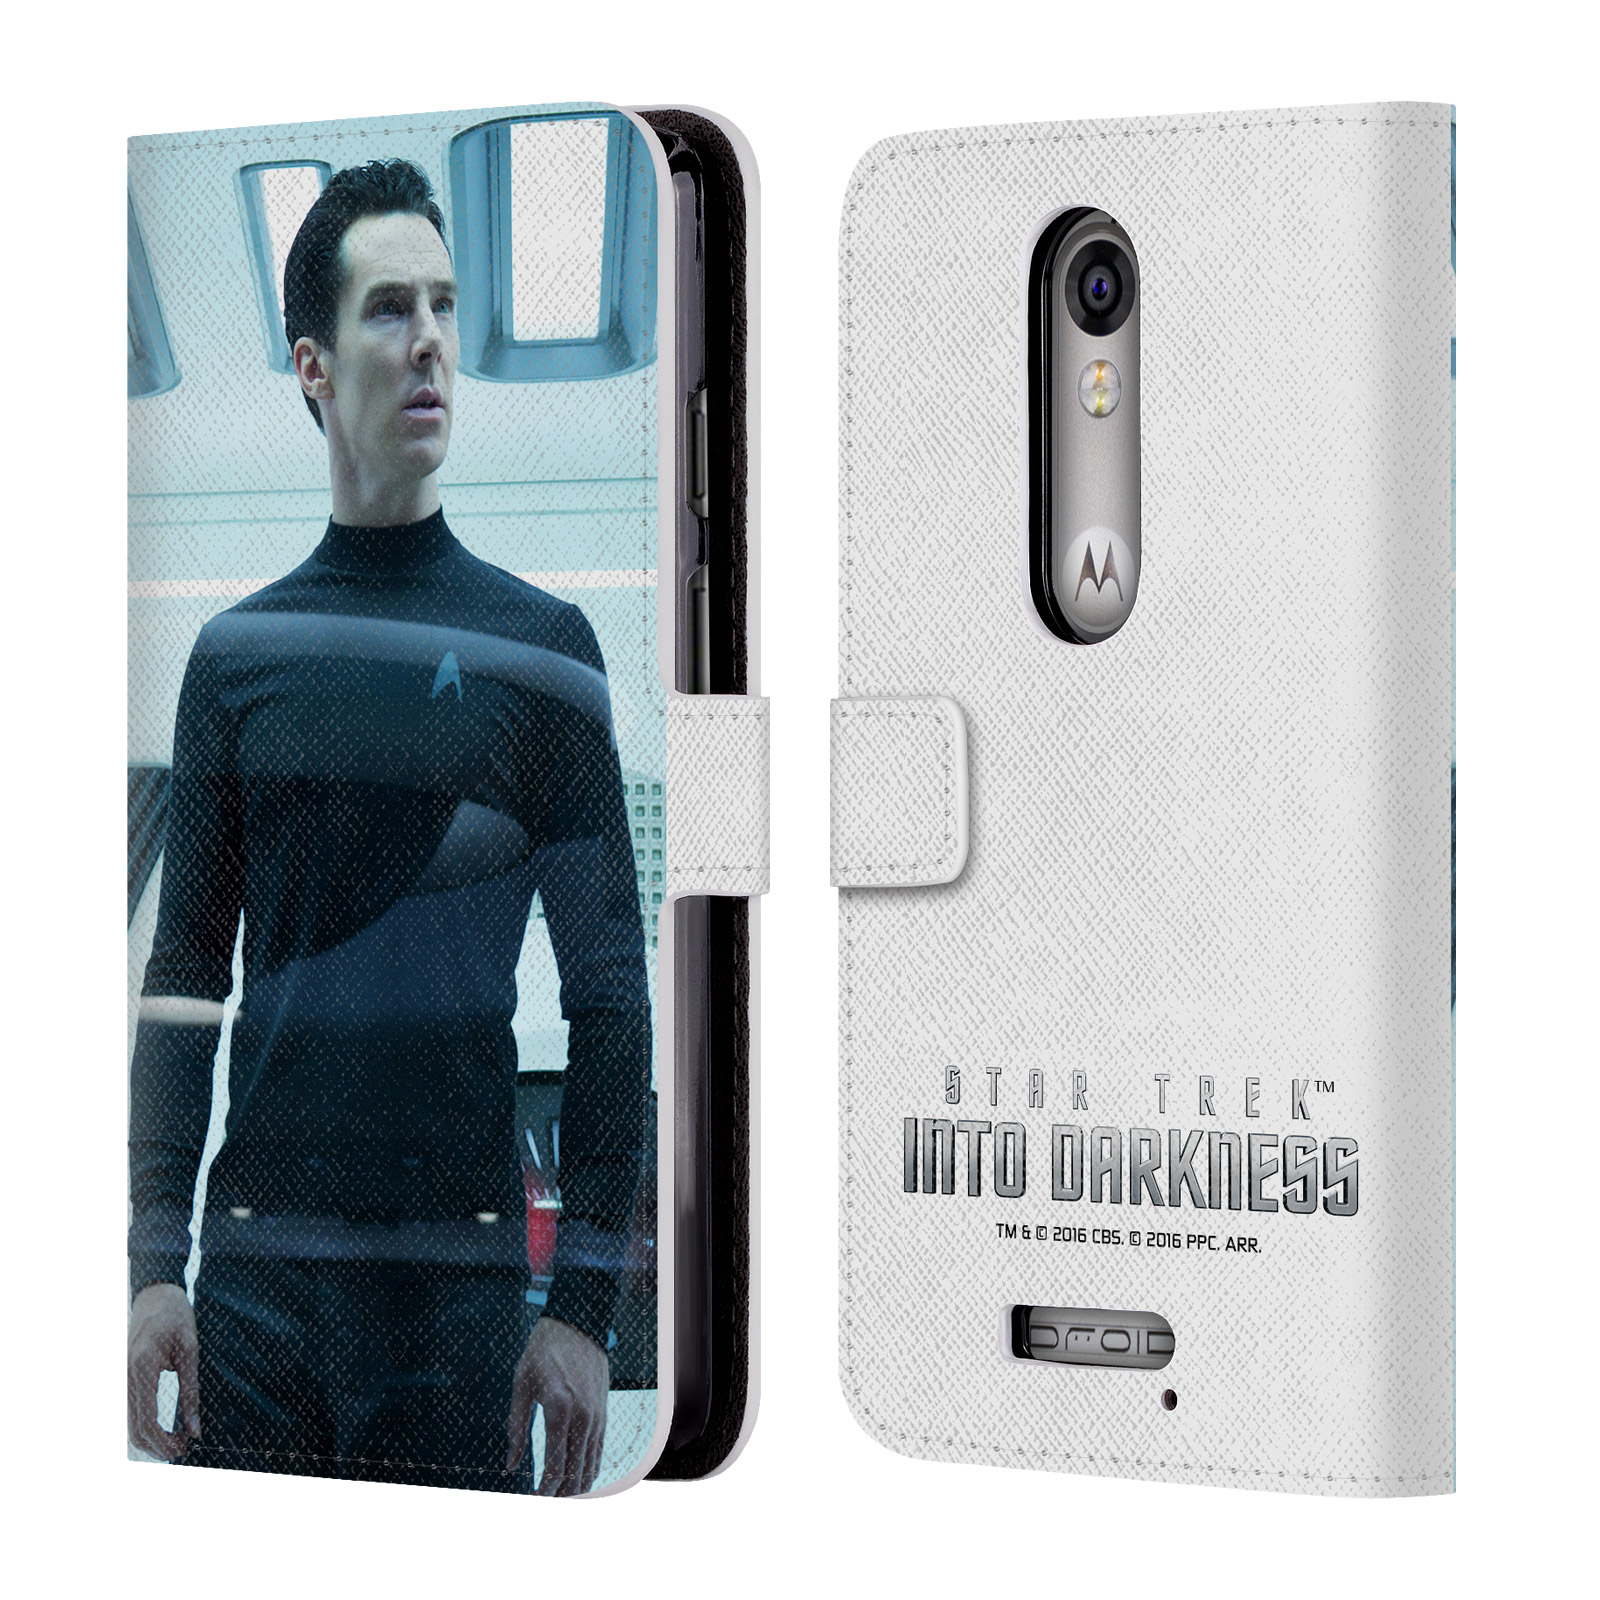 OFFICIAL STAR TREK MOVIE STILLS INTO DARKNESS XII LEATHER BOOK WALLET CASE COVER FOR MOTOROLA PHONES